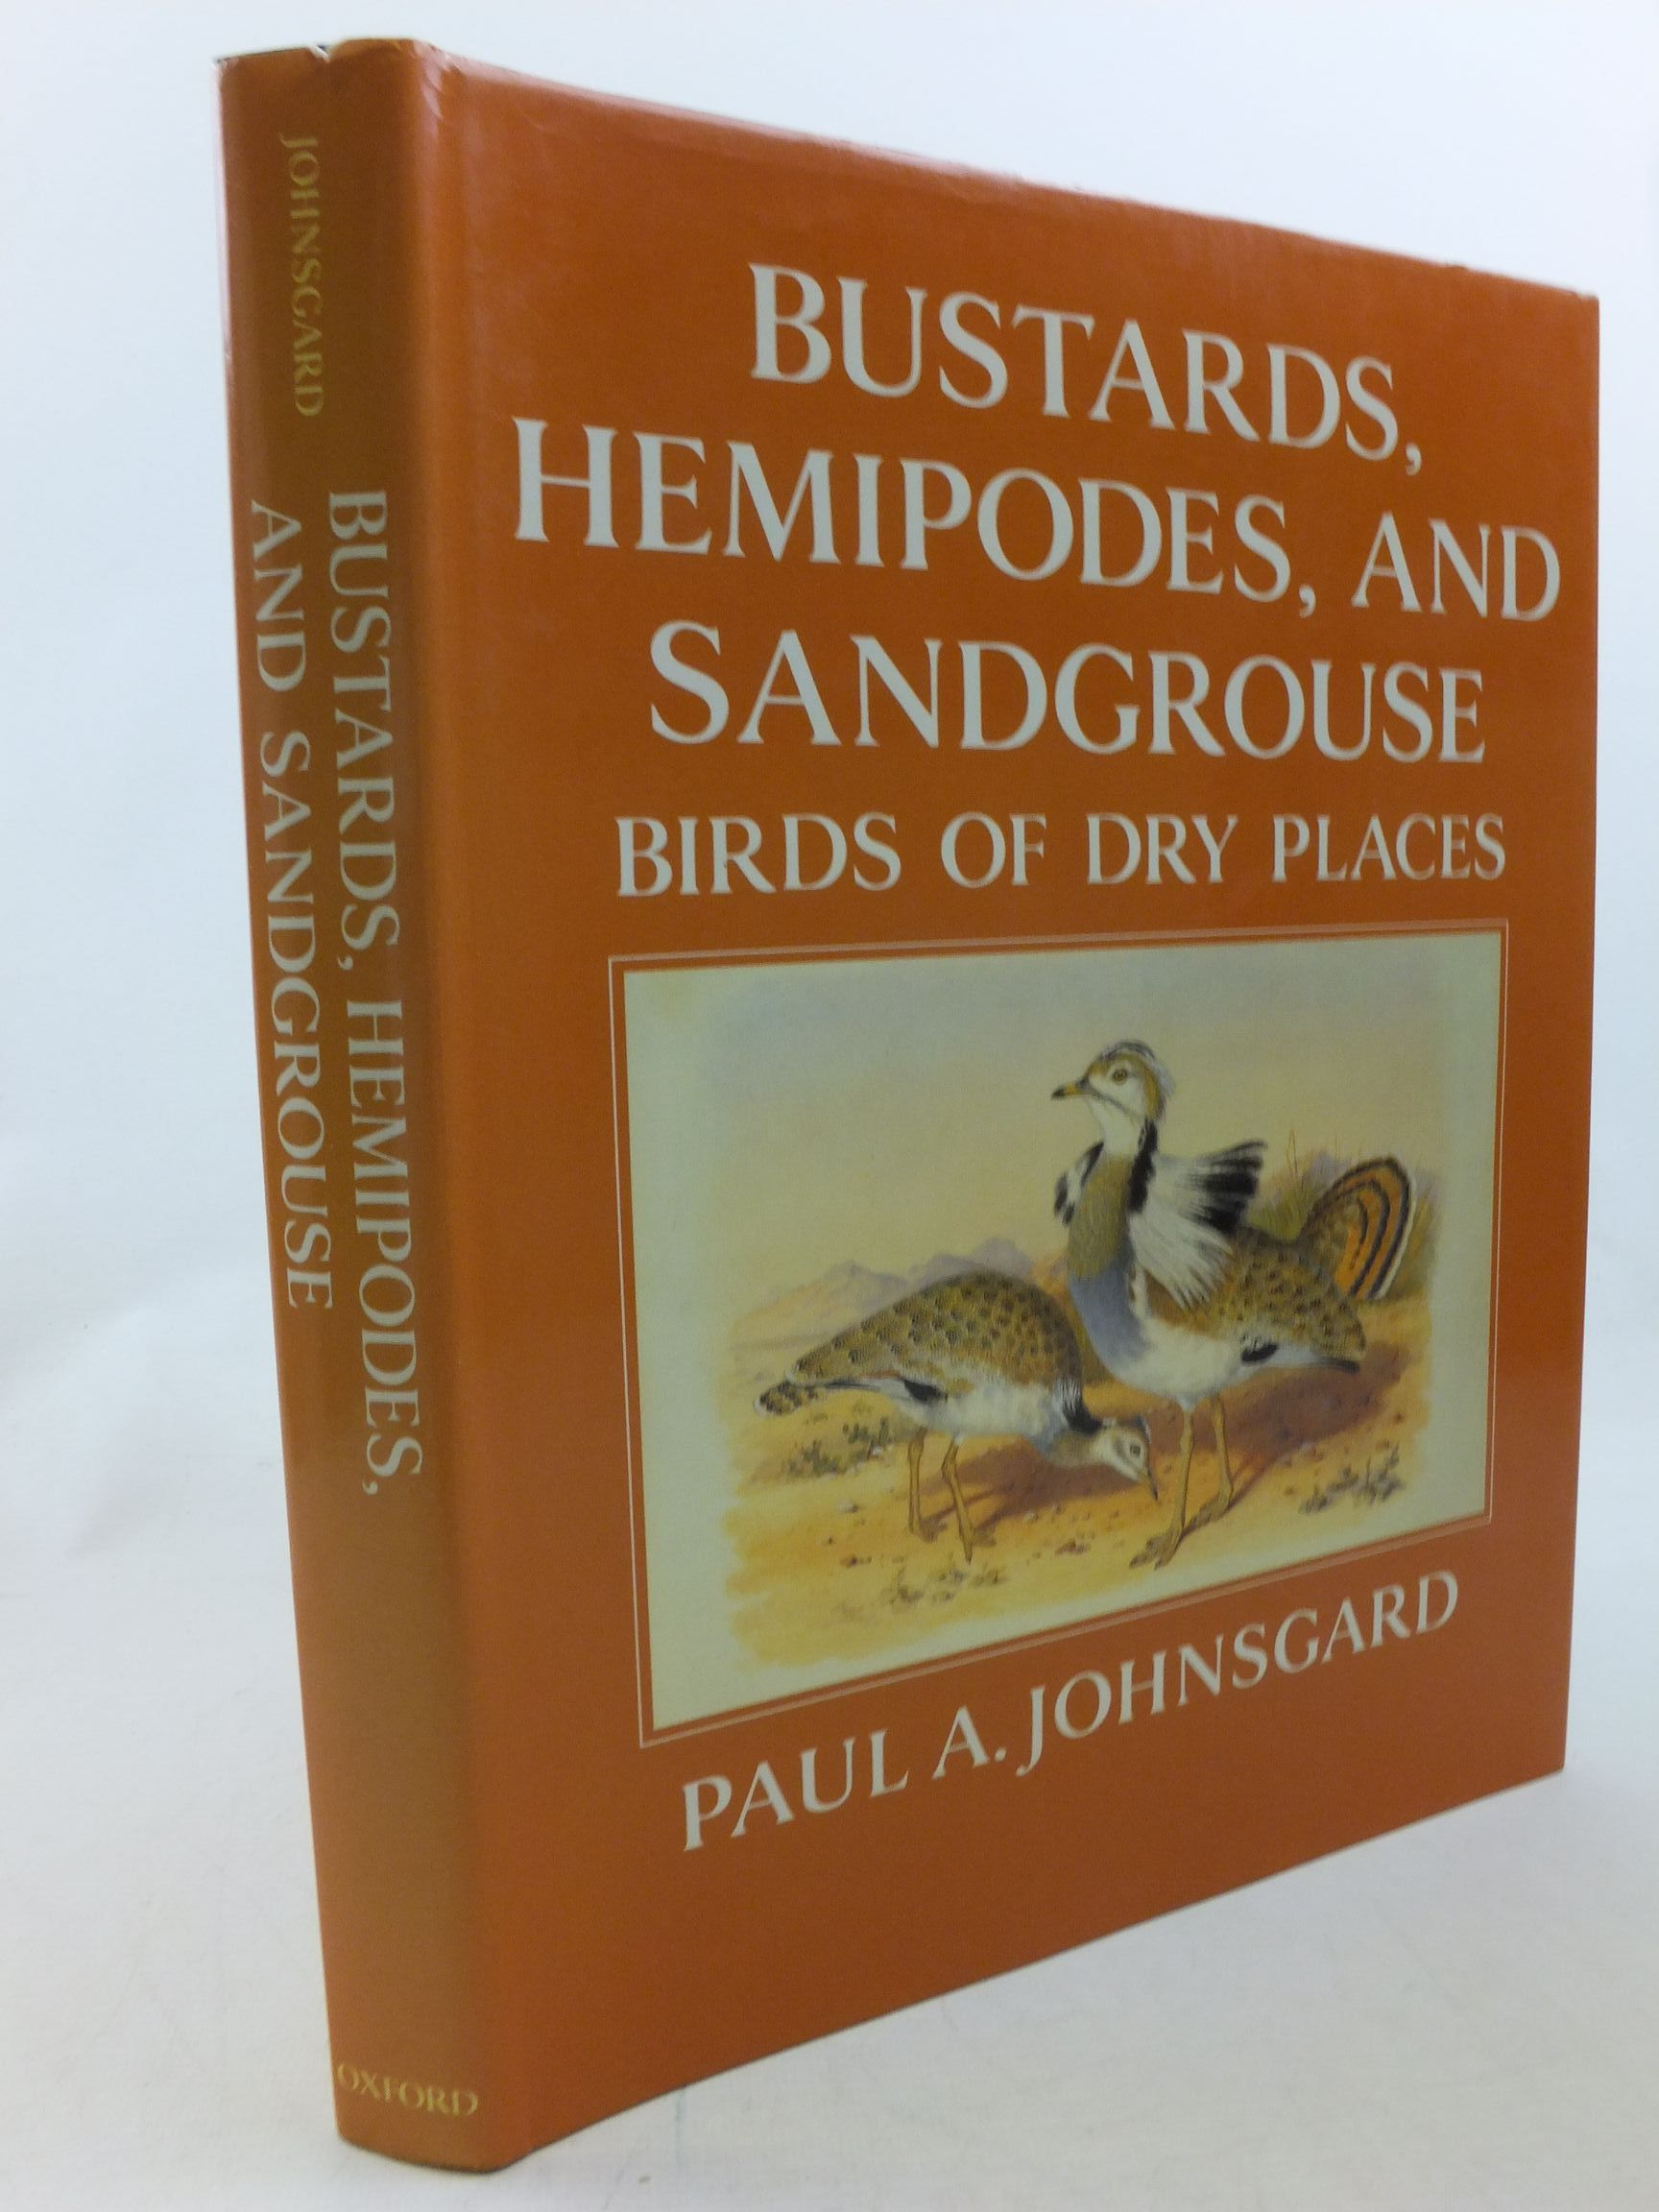 Photo of BUSTARDS, HEMIPODES, AND SANDGROUSE: BIRDS OF DRY PLACES written by Johnsgard, Paul A. illustrated by Jones, Henry published by Oxford University Press (STOCK CODE: 2114346)  for sale by Stella & Rose's Books